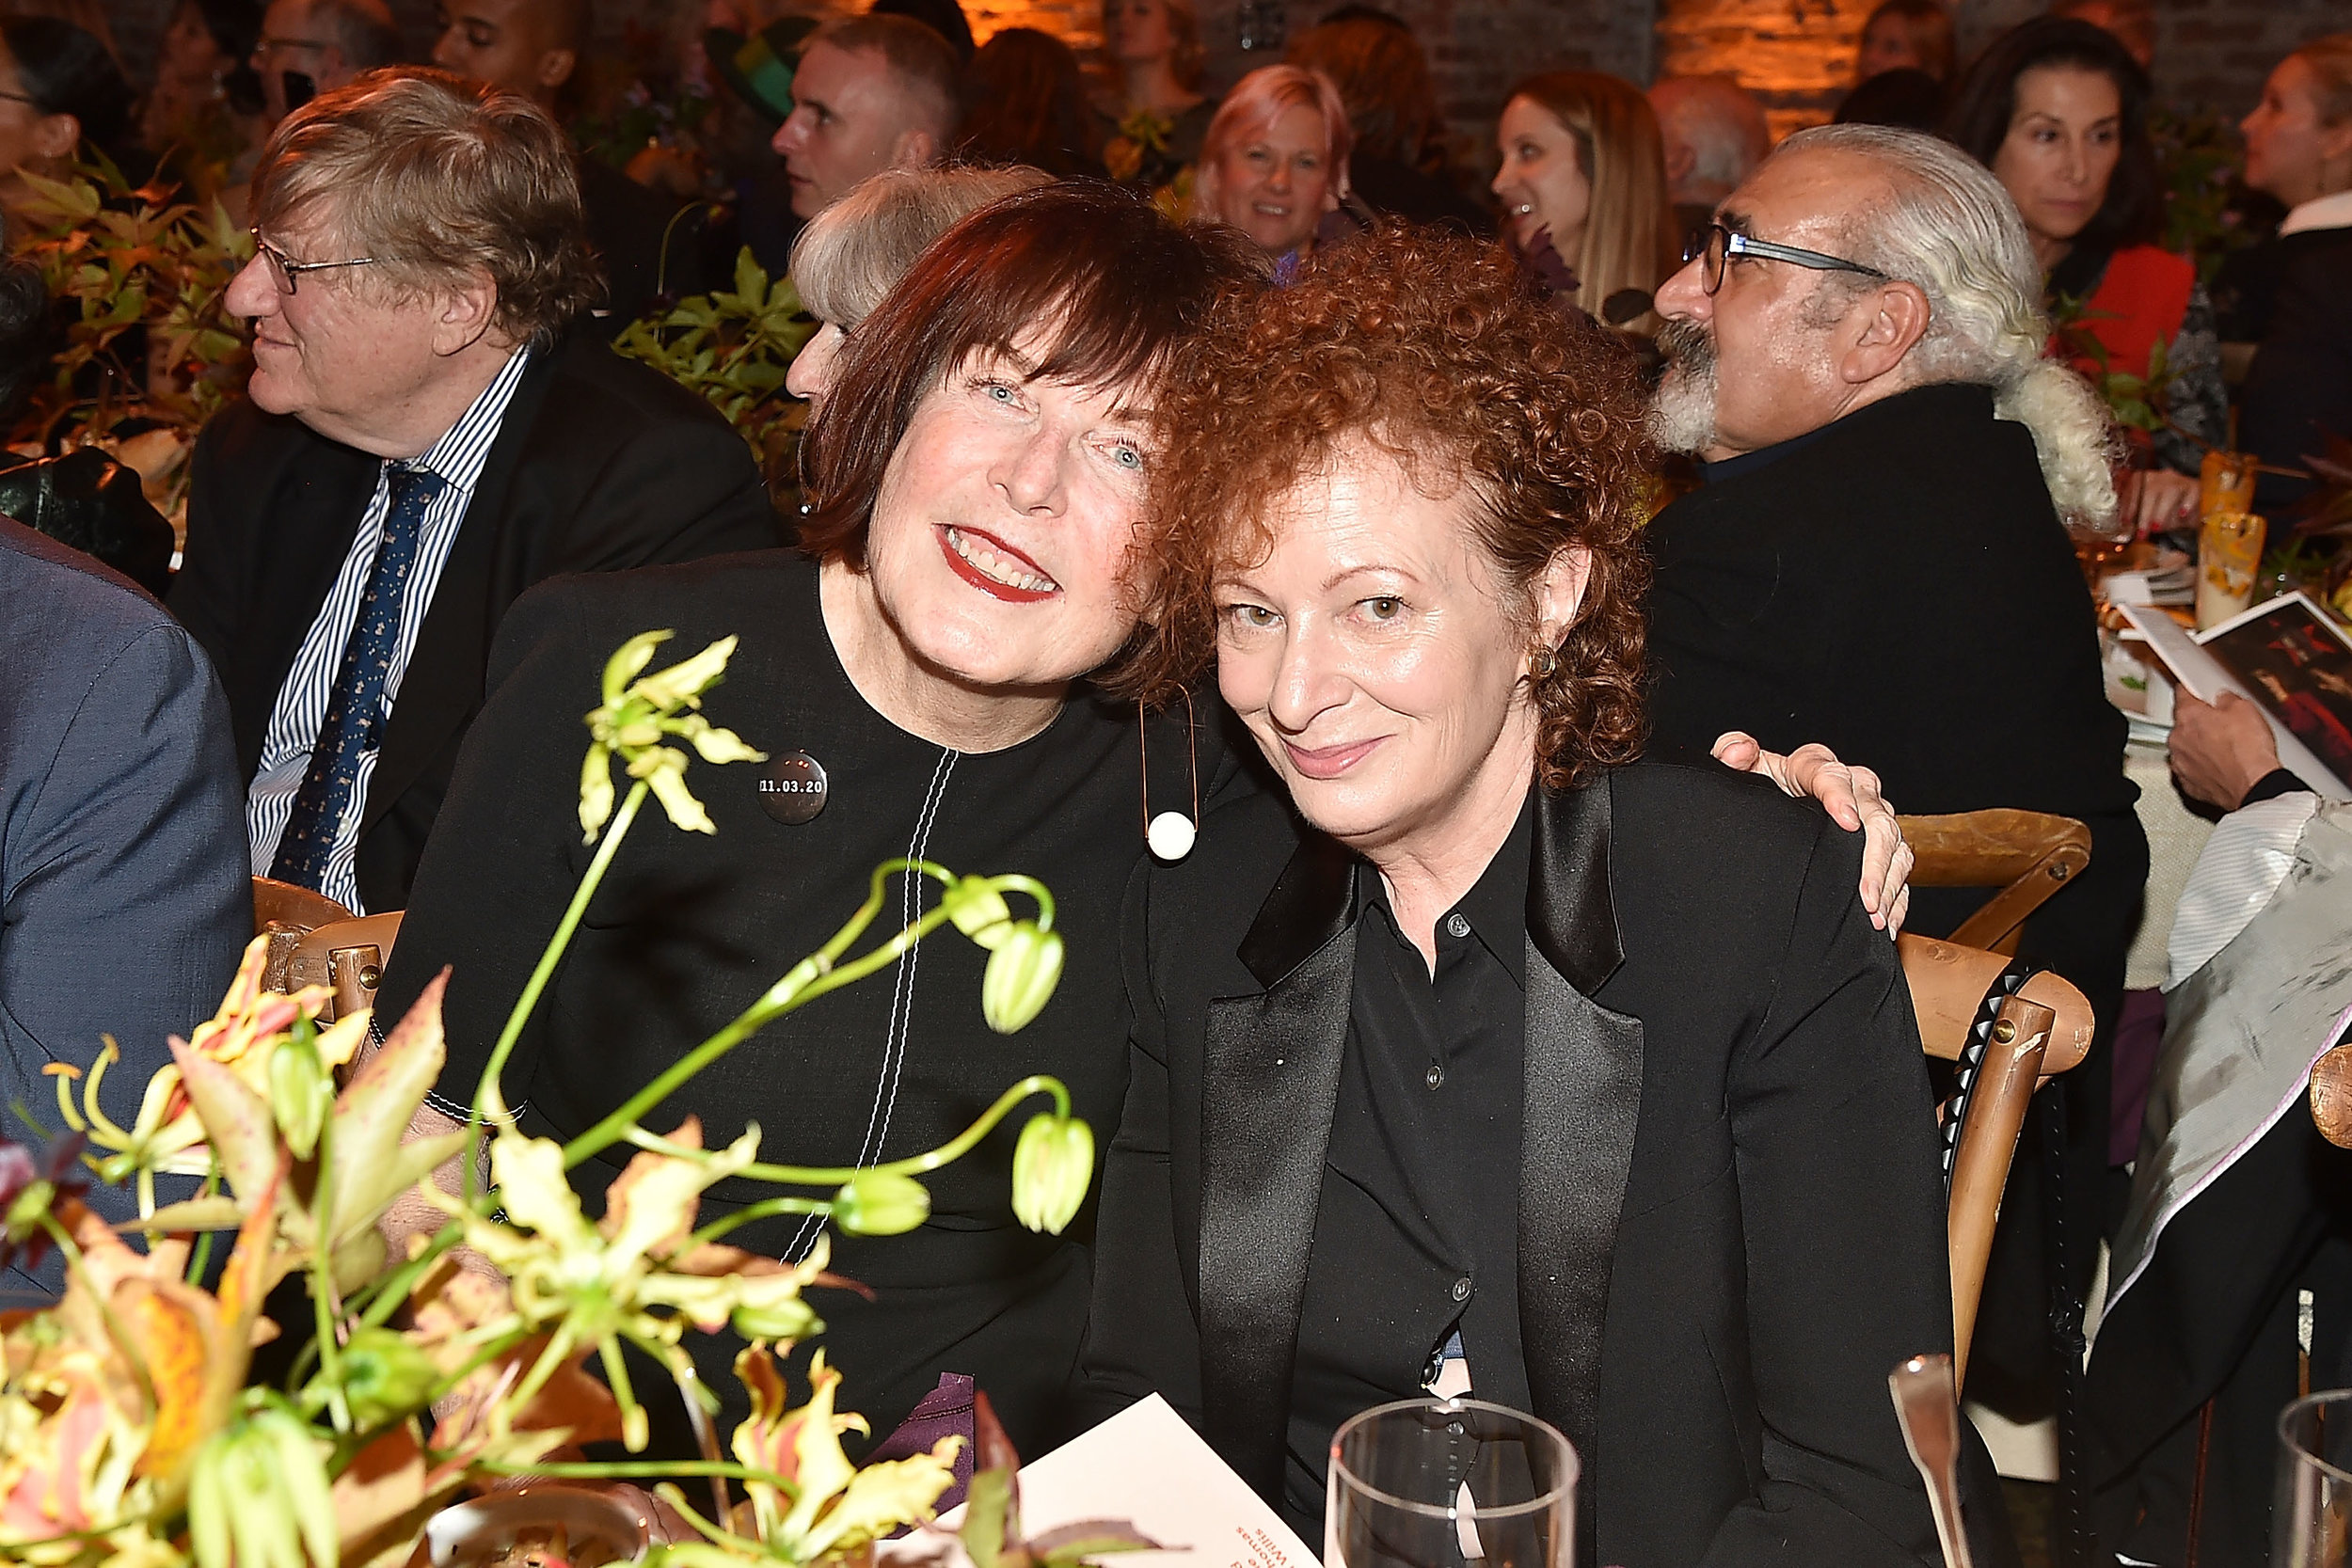 Marilyn Minter and Nan Goldin. Patrick McMullan/PMC © Patrick McMullan